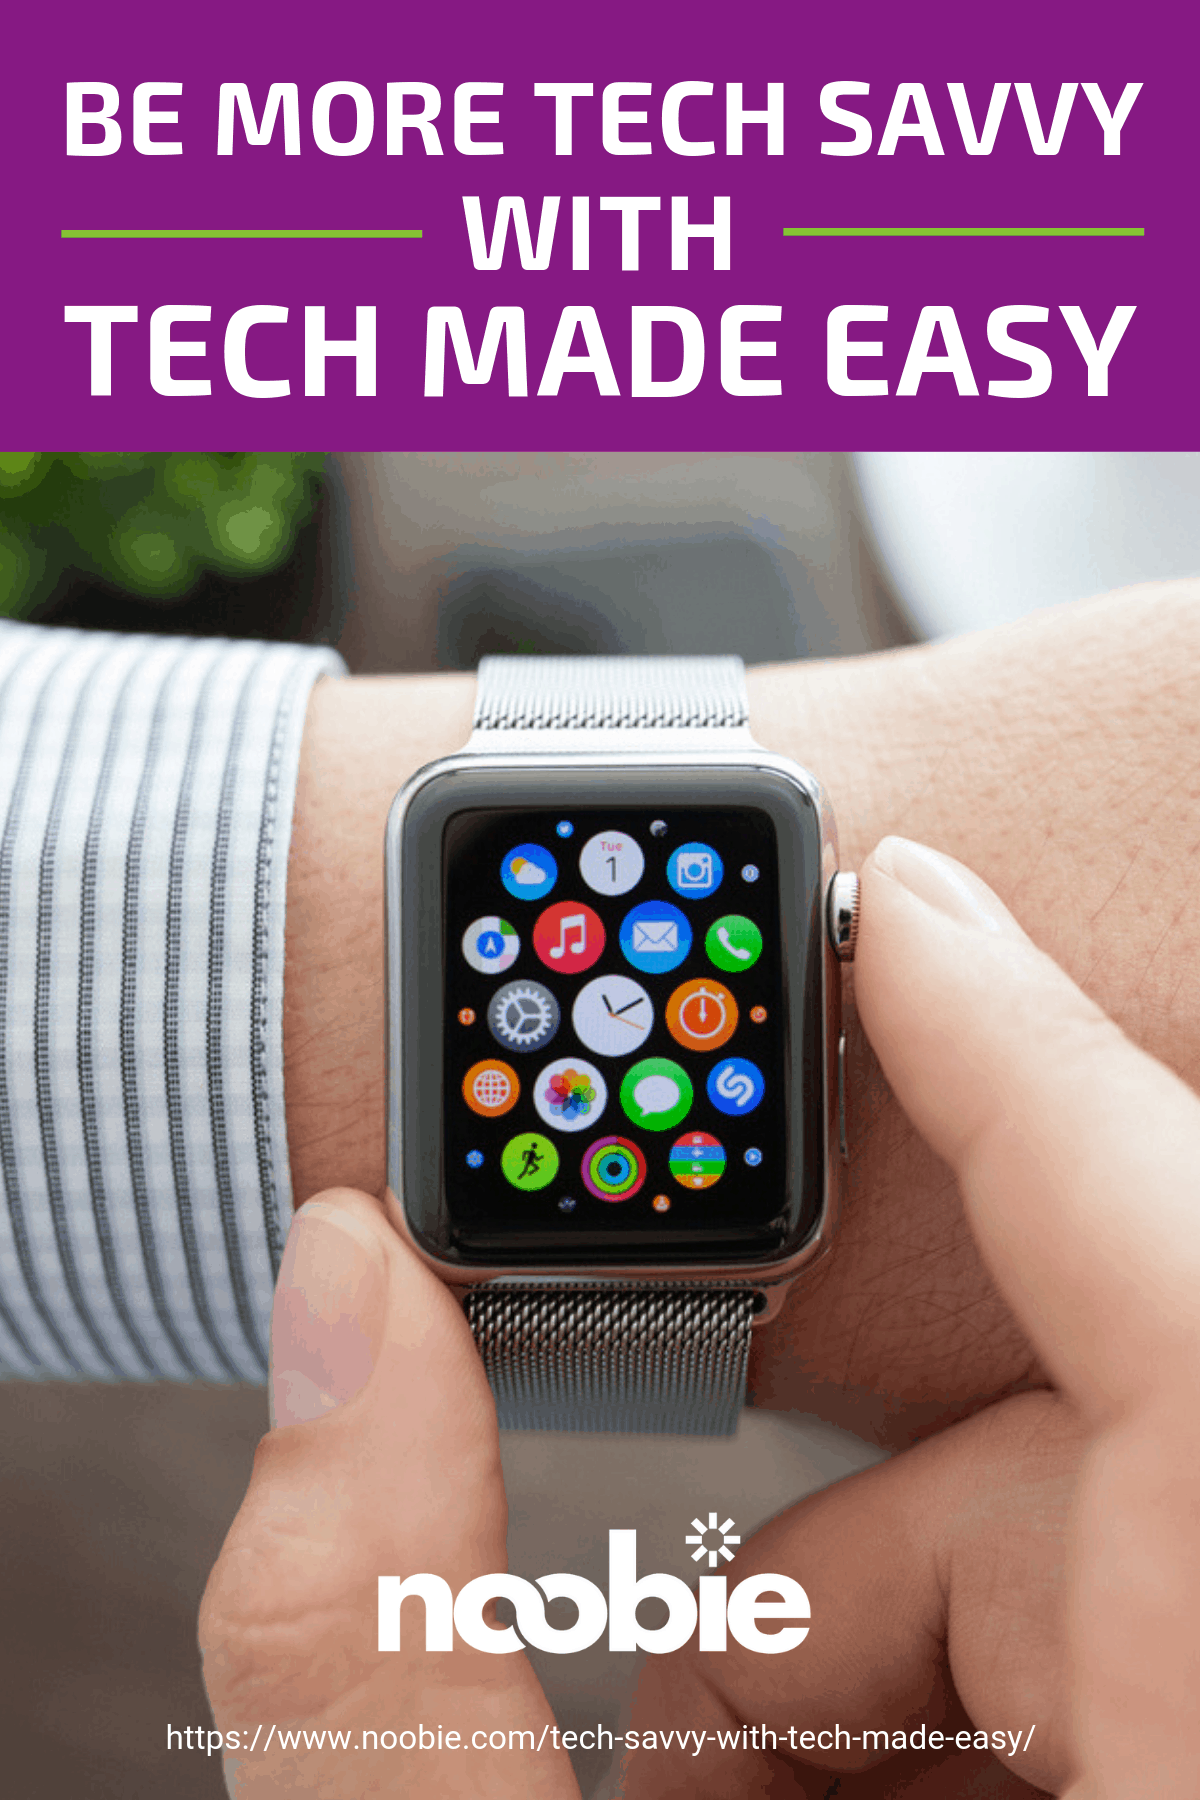 Be More Tech Savvy With Tech Made Easy https://www.noobie.com/tech-savvy-with-tech-made-easy/